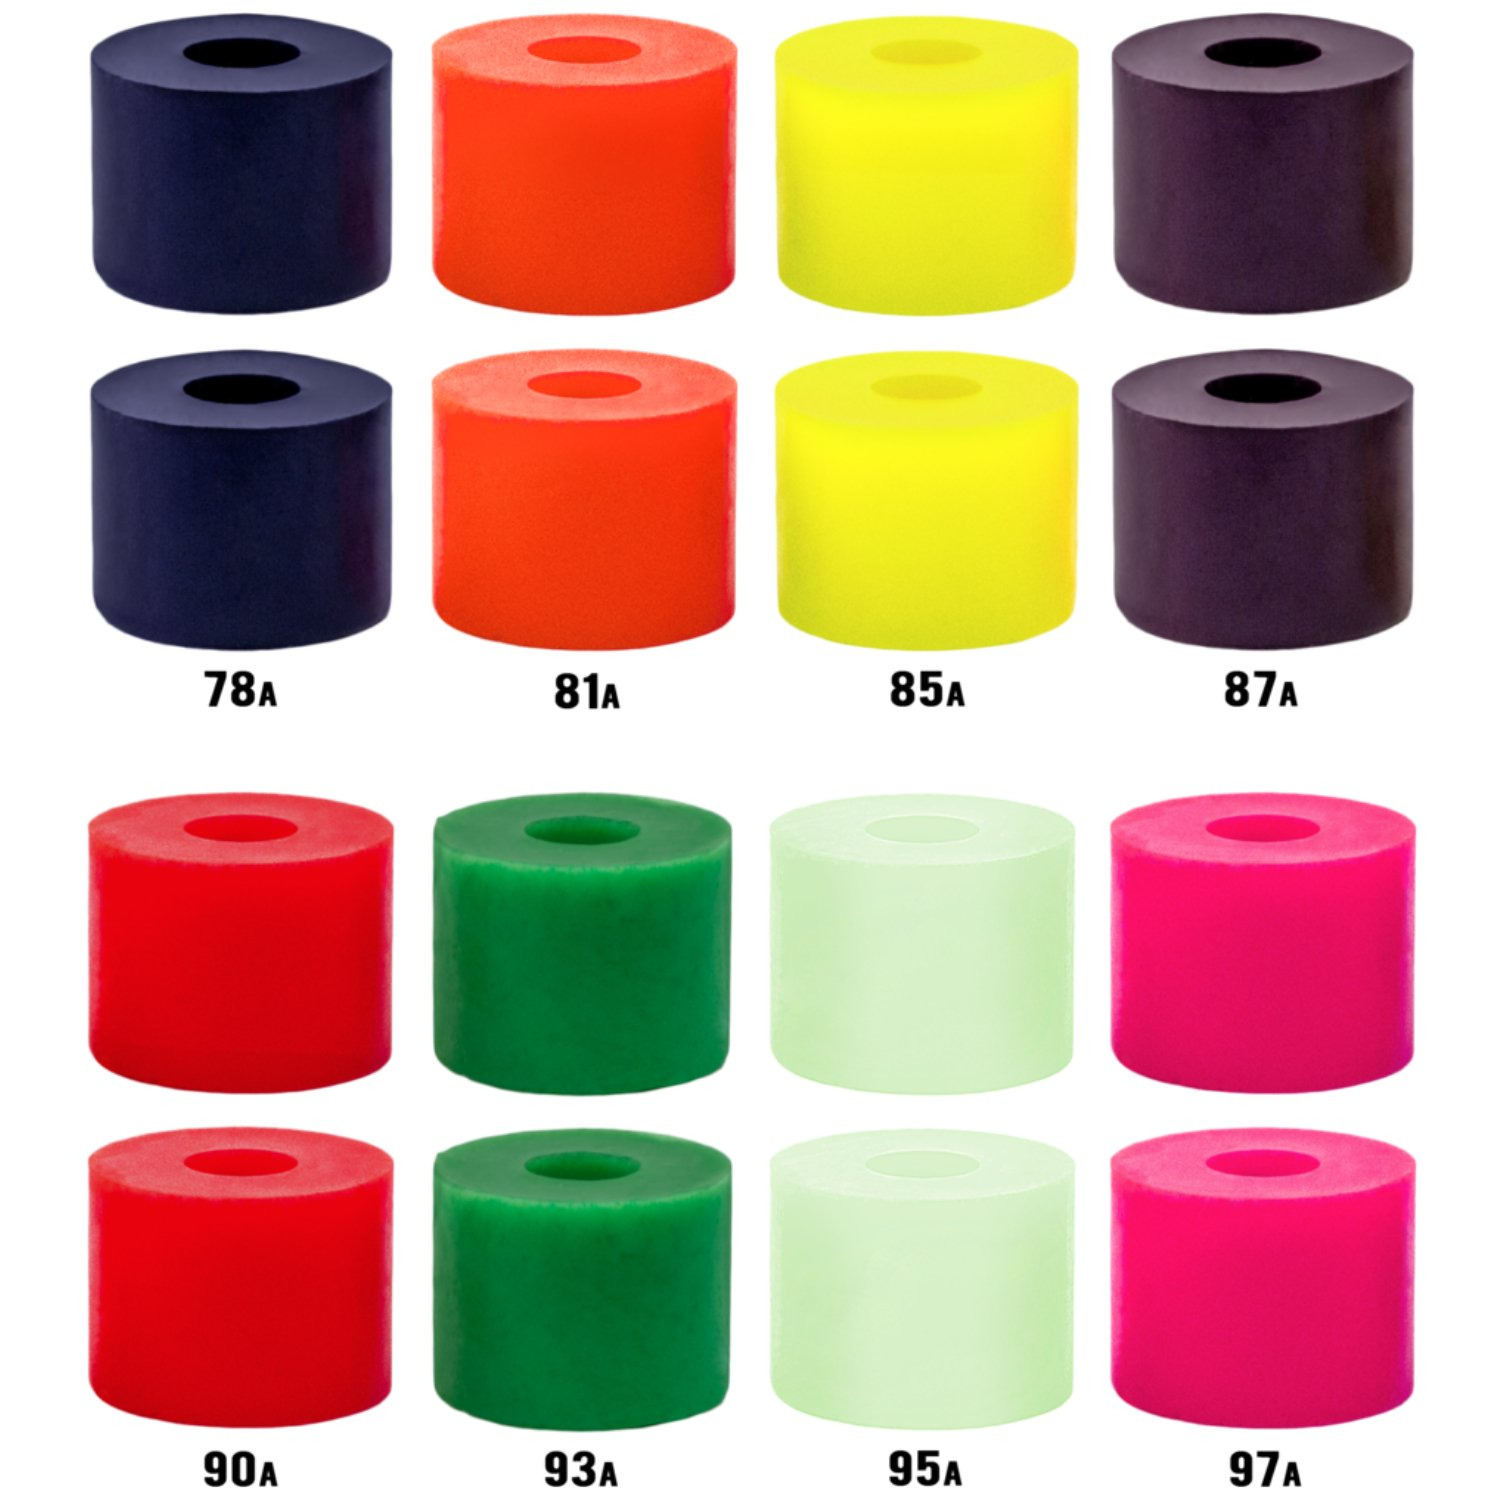 Venom Bushings - High Performance Formula [All Durometers & Shapes] for Skateboards, Longboards (Tall Barrel, 90a - Red)